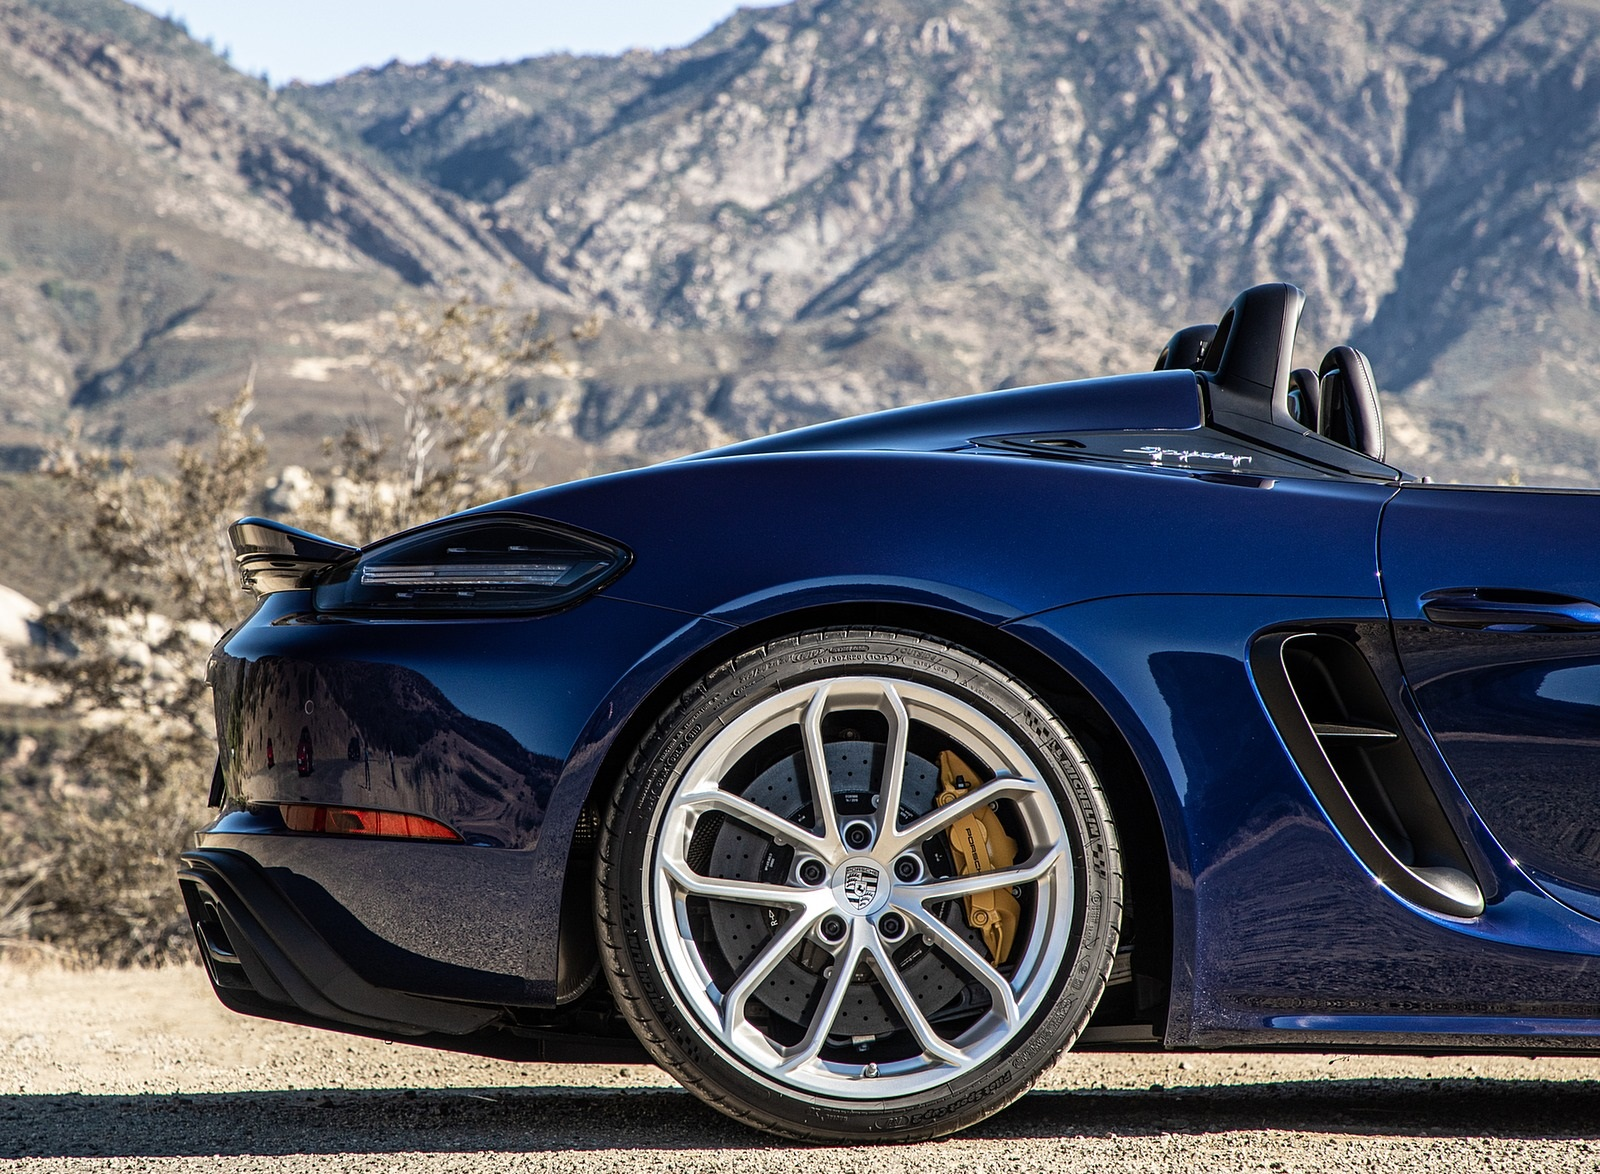 2020 Porsche 718 Spyder Wheel Wallpapers (12)